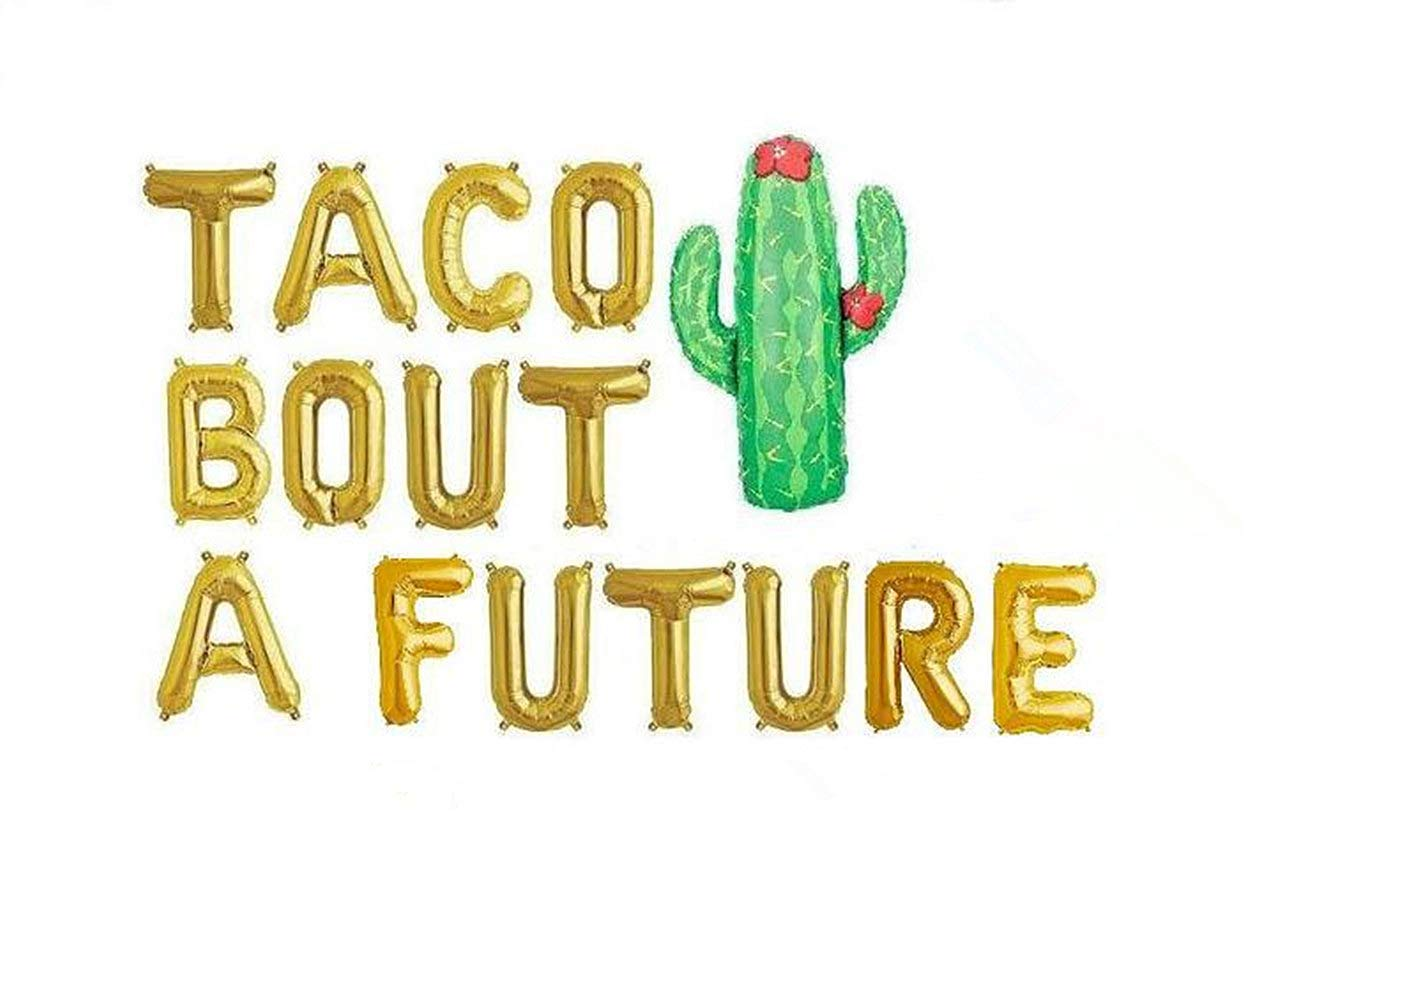 """WULEEUPER TACO BOUT A FUTURE Balloons   16"""" Gold Letter Cactus Gard Balloons   Graduation Celebration Banner for Fiesta Graduation Party   Wedding Bridal Shower Anniversary Engagement Party Decoration"""